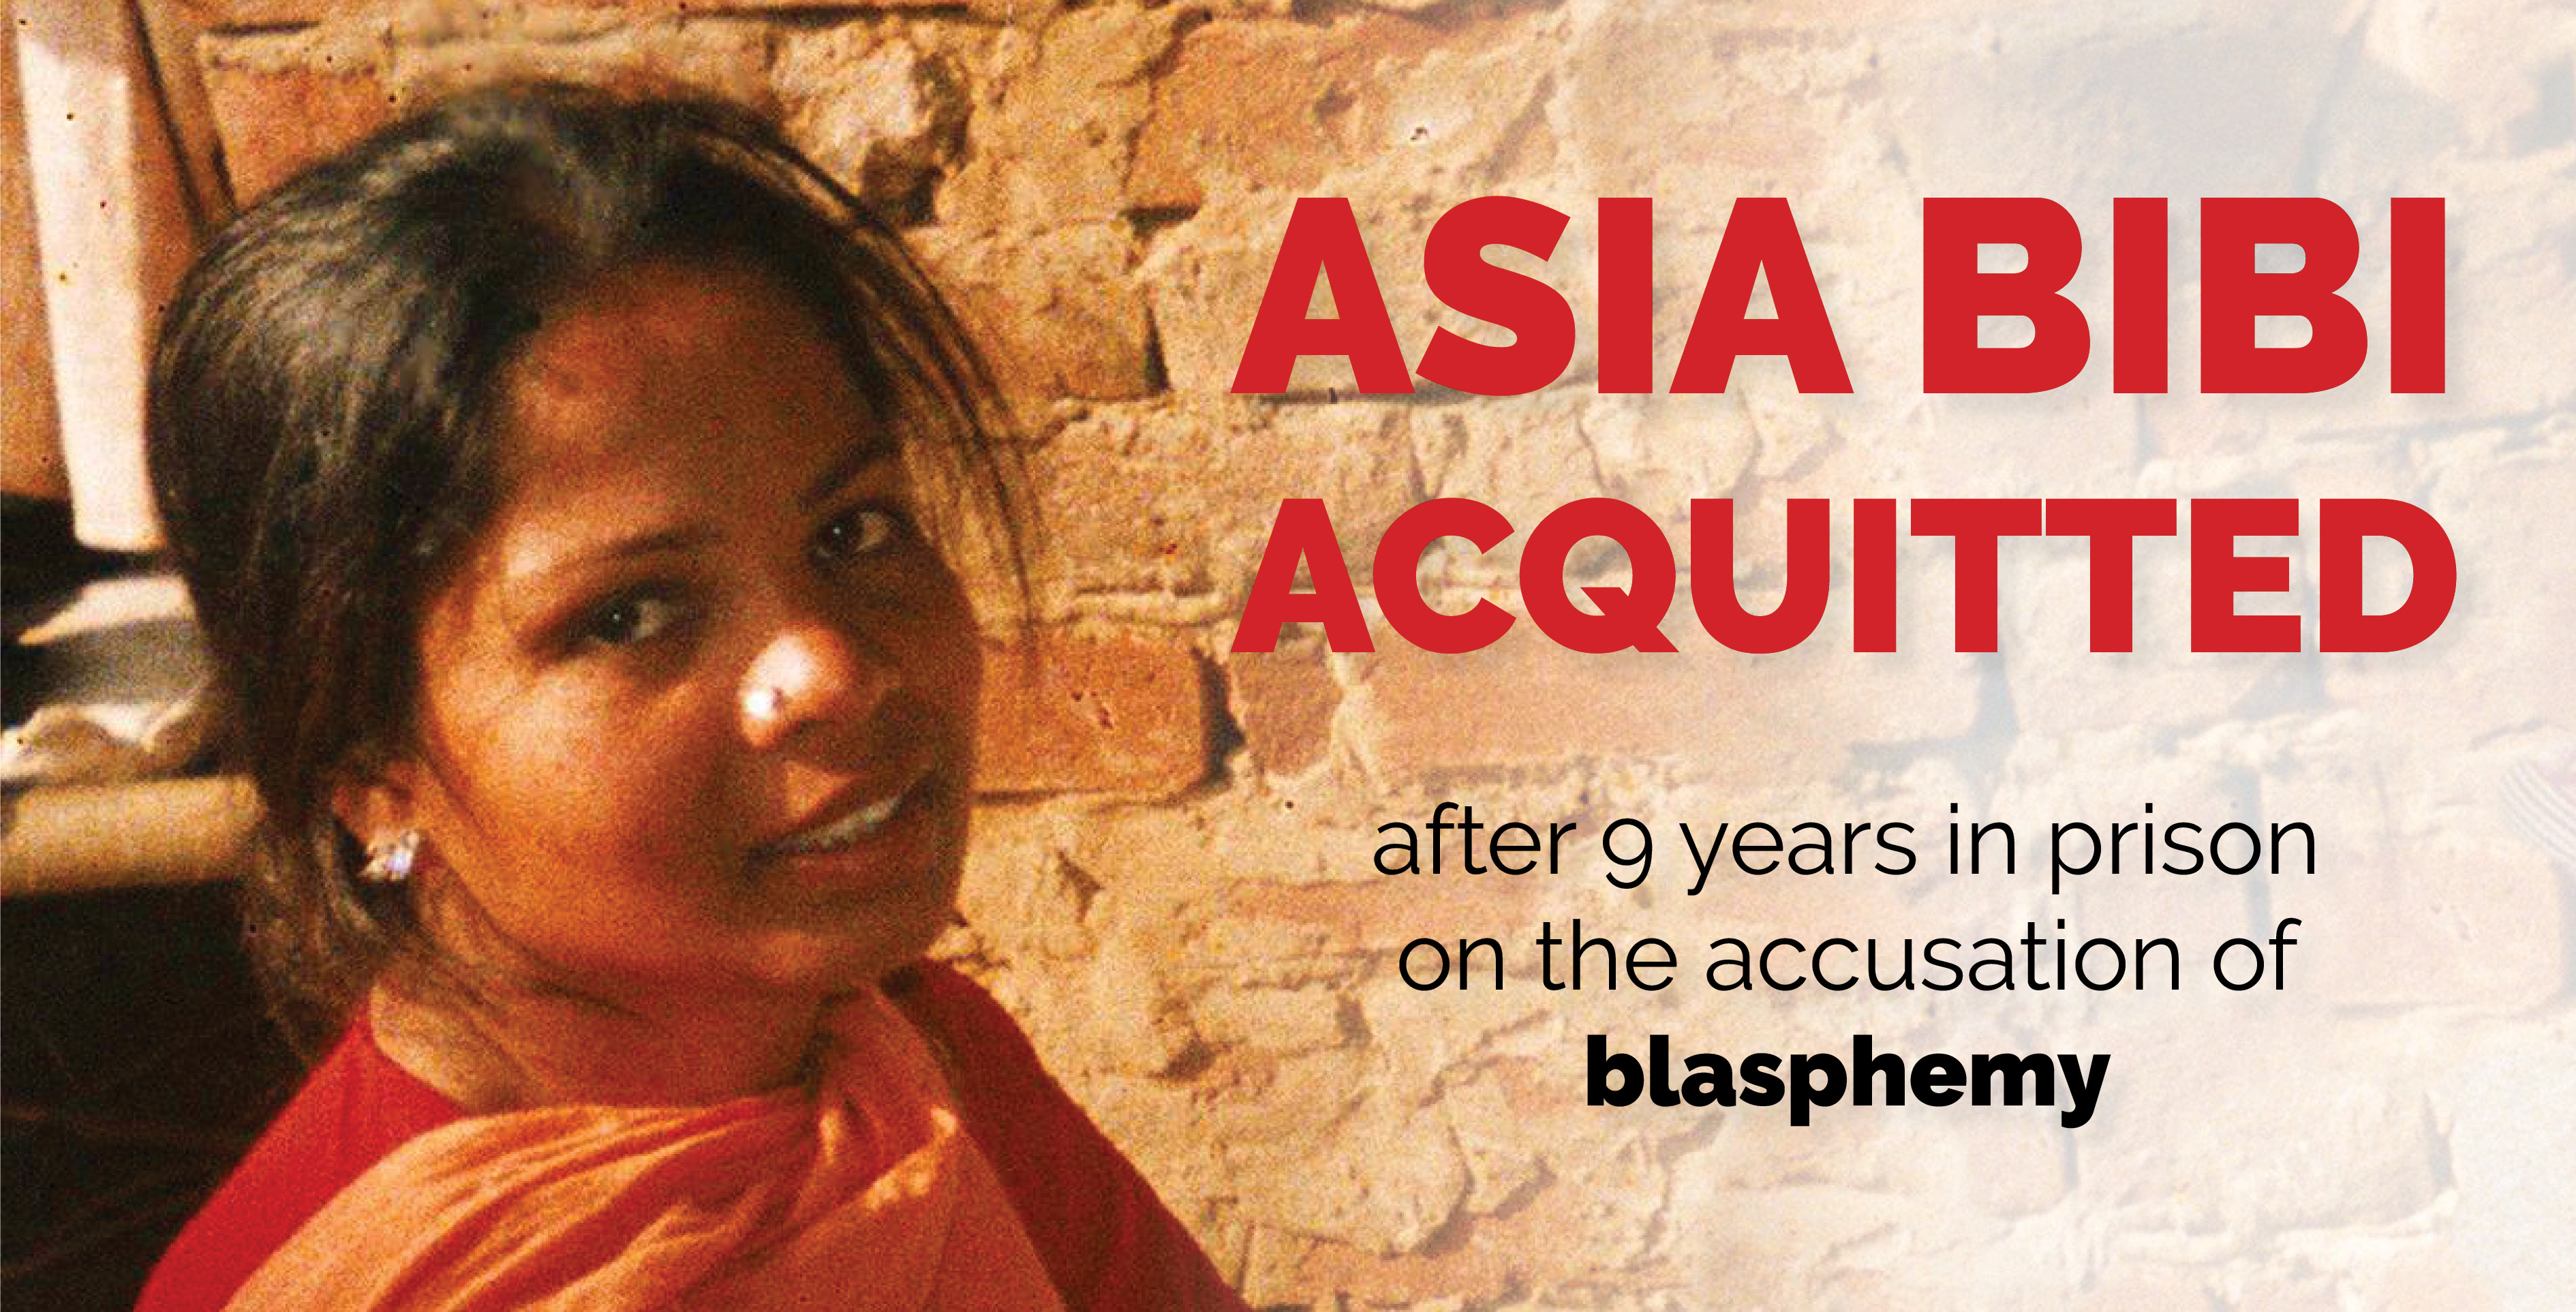 Asia Bibi acquitted after 9 years in prison on the accusation of 'blasphemy'